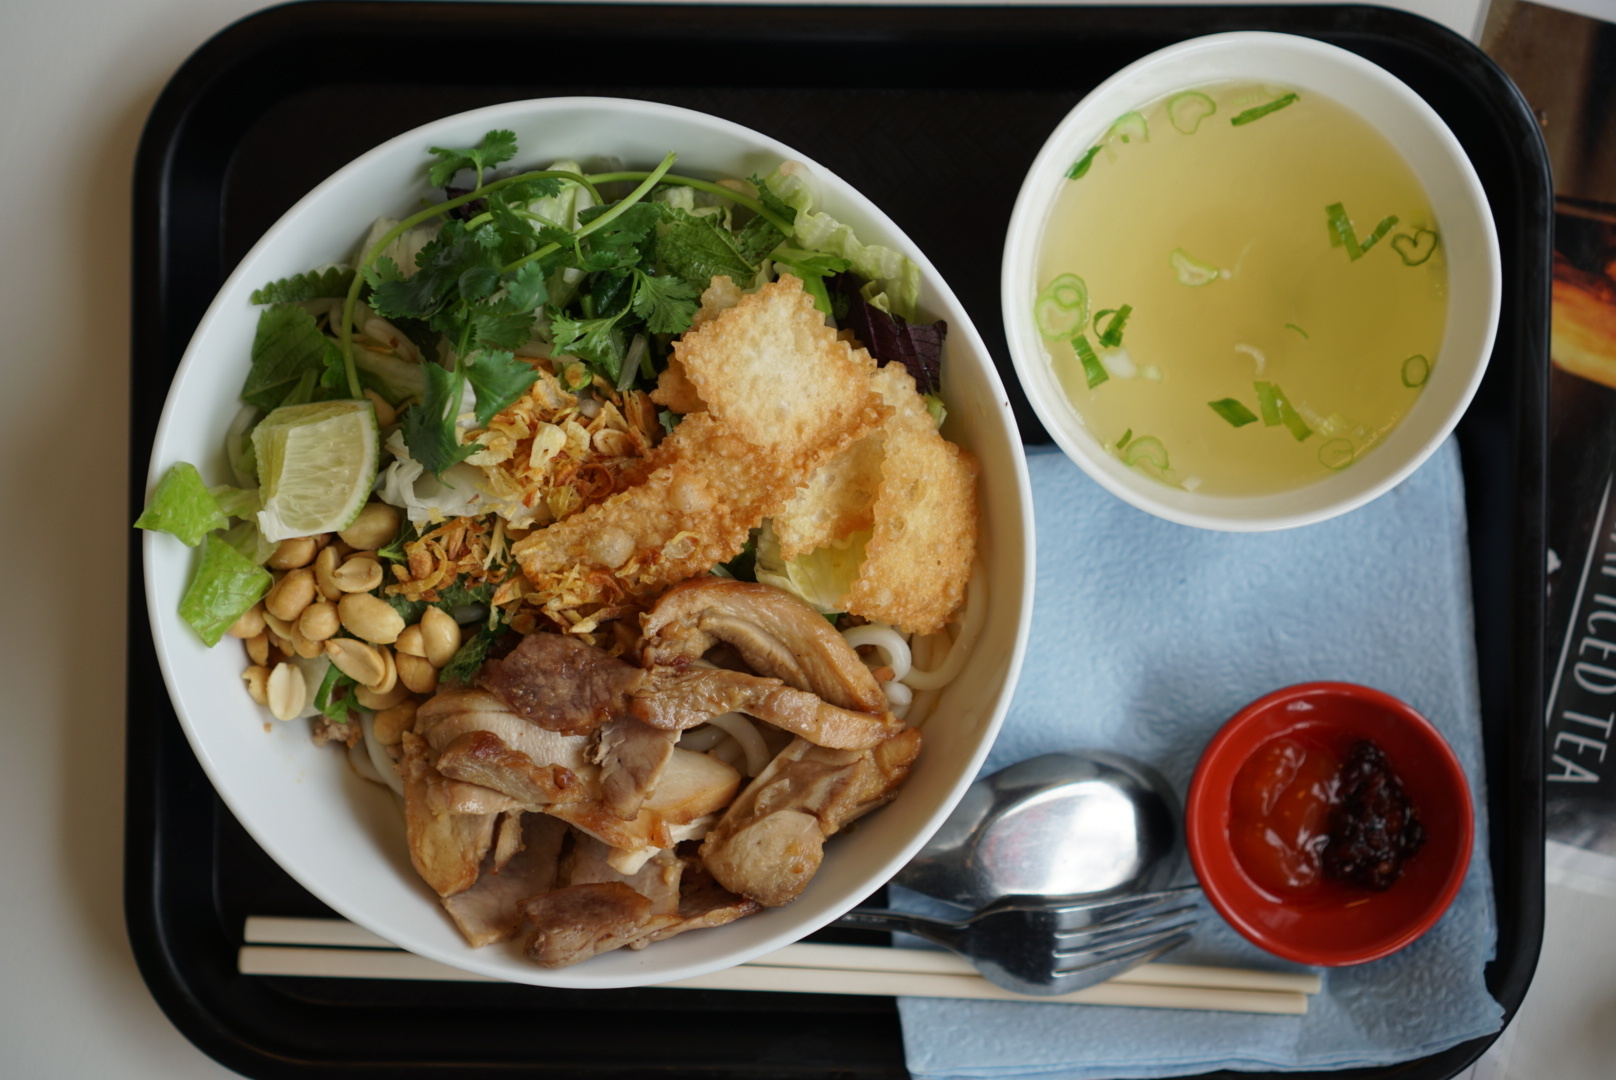 A dish of noodles, pork, chicken, and a mess of herbs, with a side of hot stock